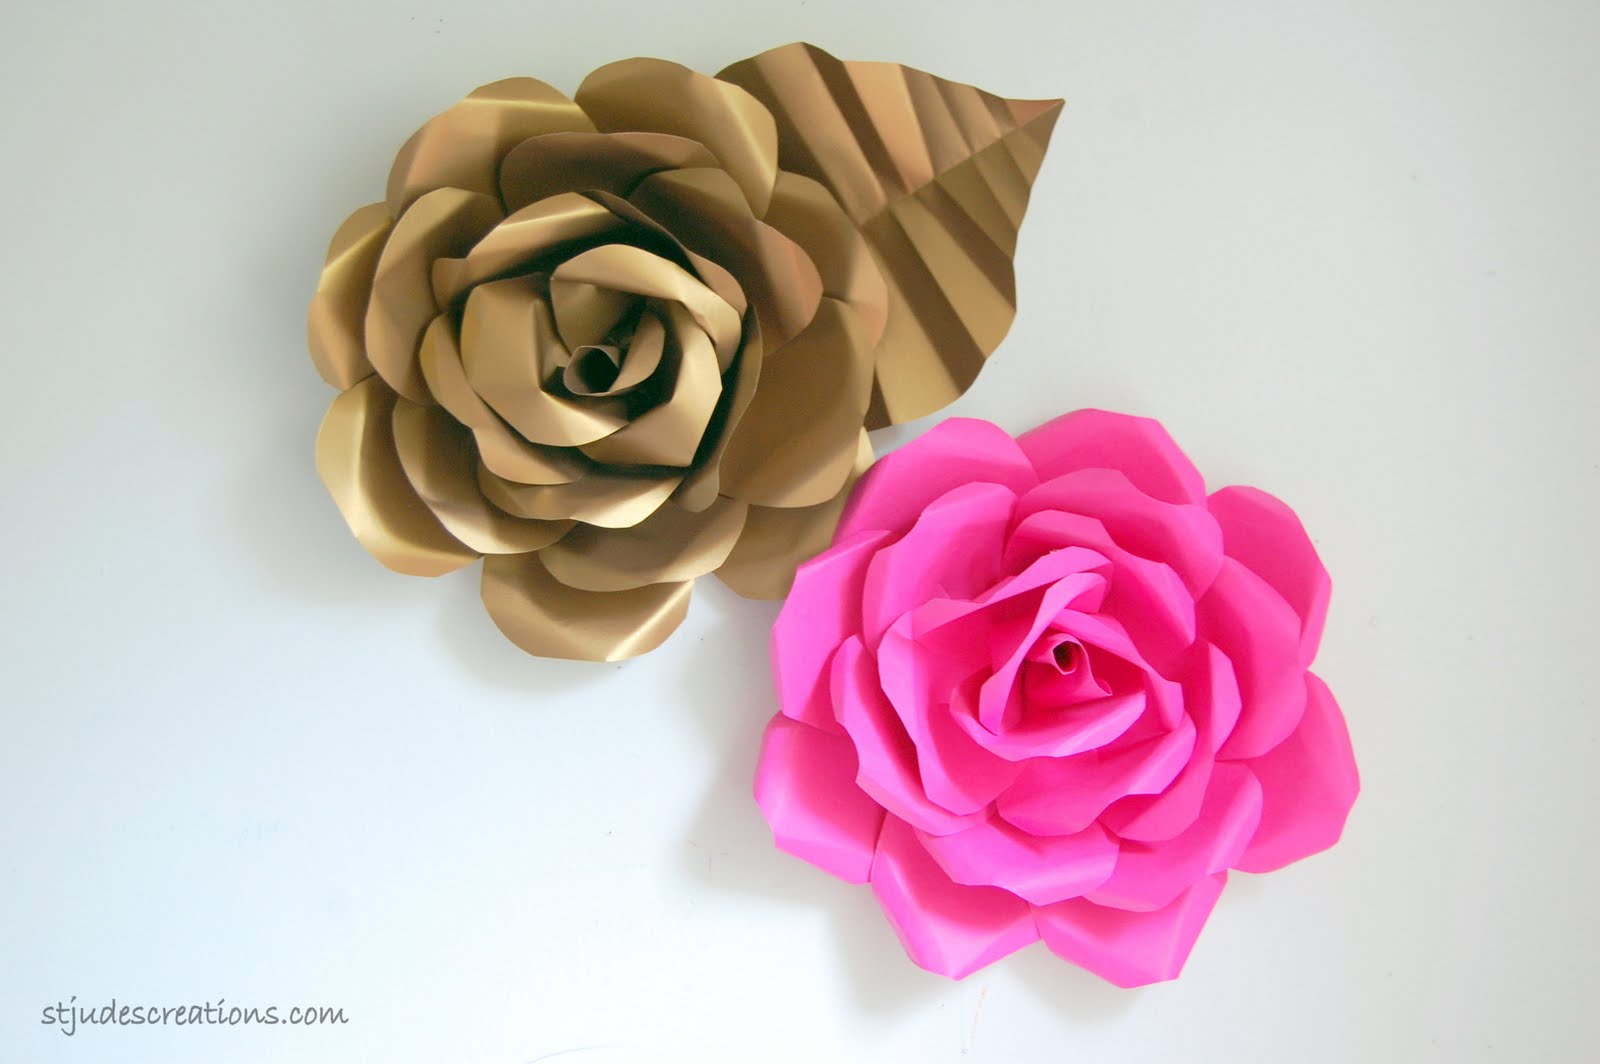 Pottery barn girls room paper flowers brianna bedding handmade paper flower hot pink and gold mightylinksfo